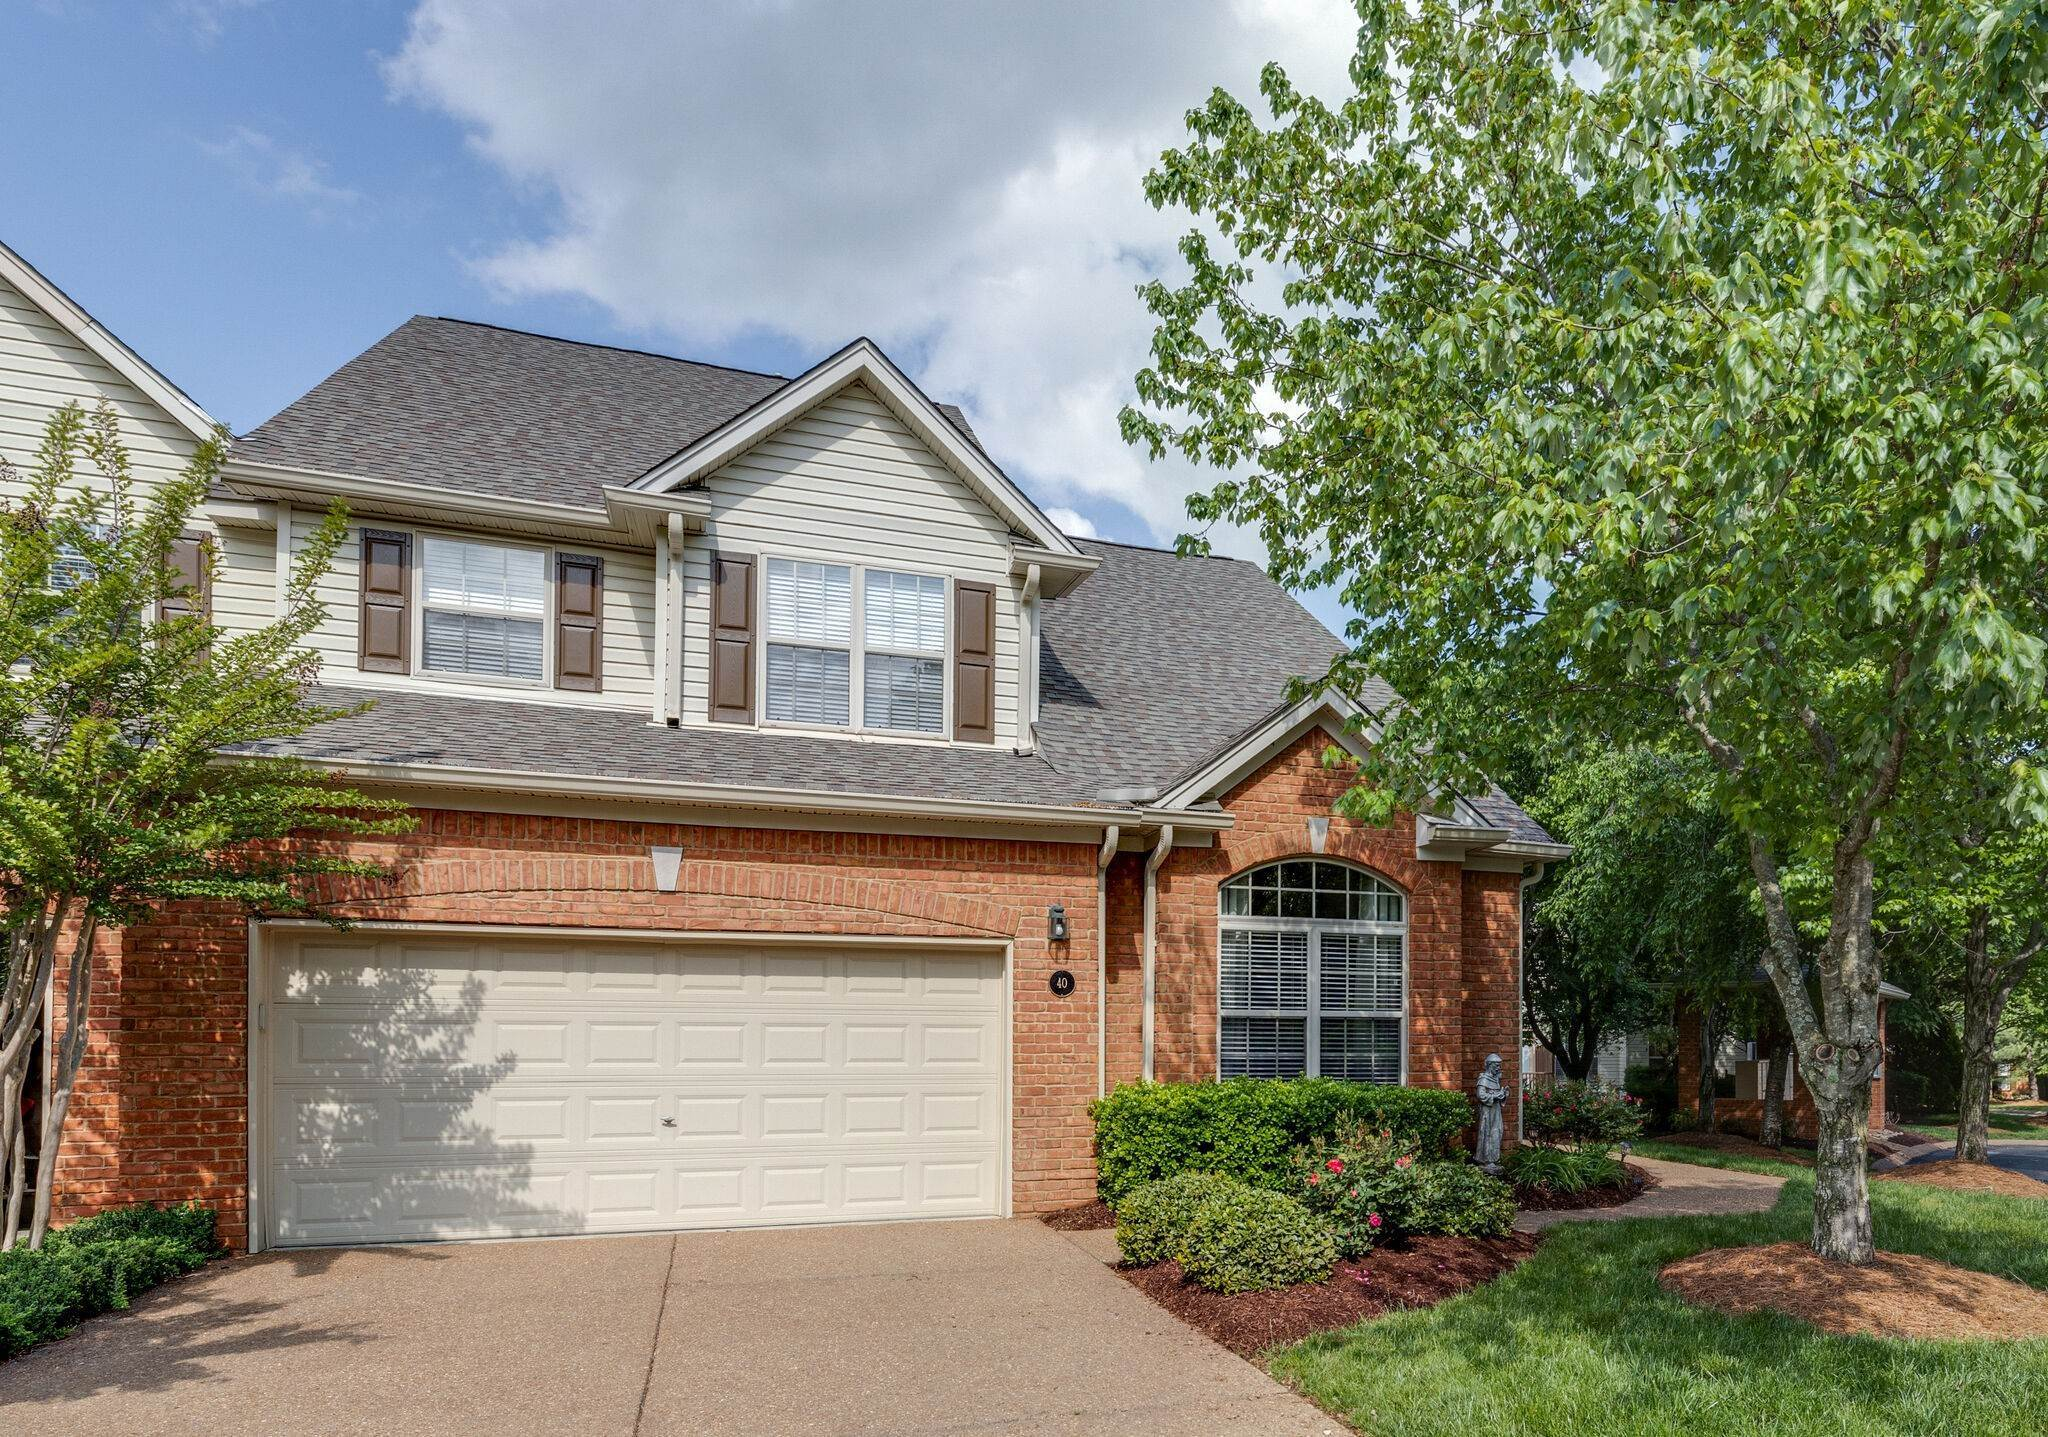 townhouses for Sale at 641 Old Hickory Blvd Brentwood, Tennessee 37027 United States